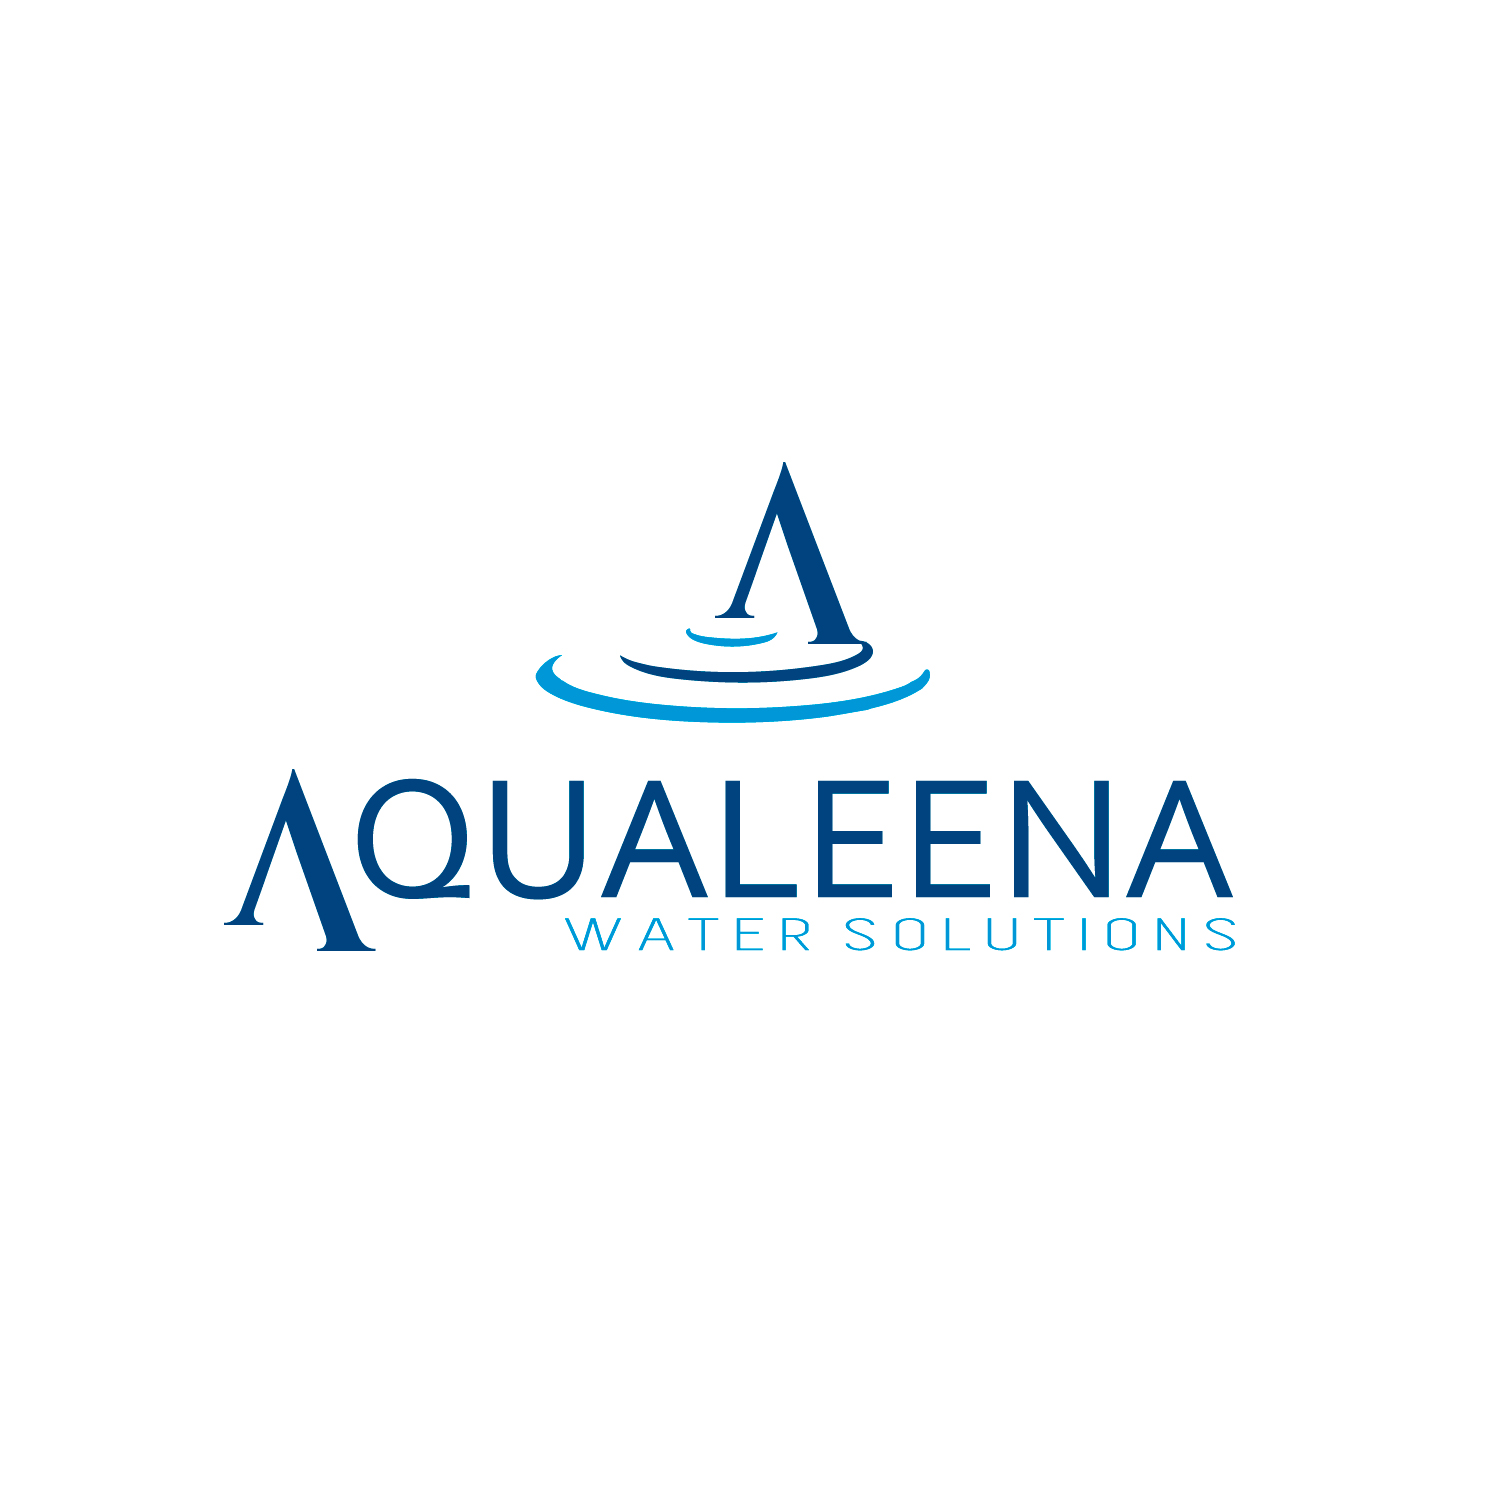 Professional, Bold, Water Treatment Logo Design for Symbol